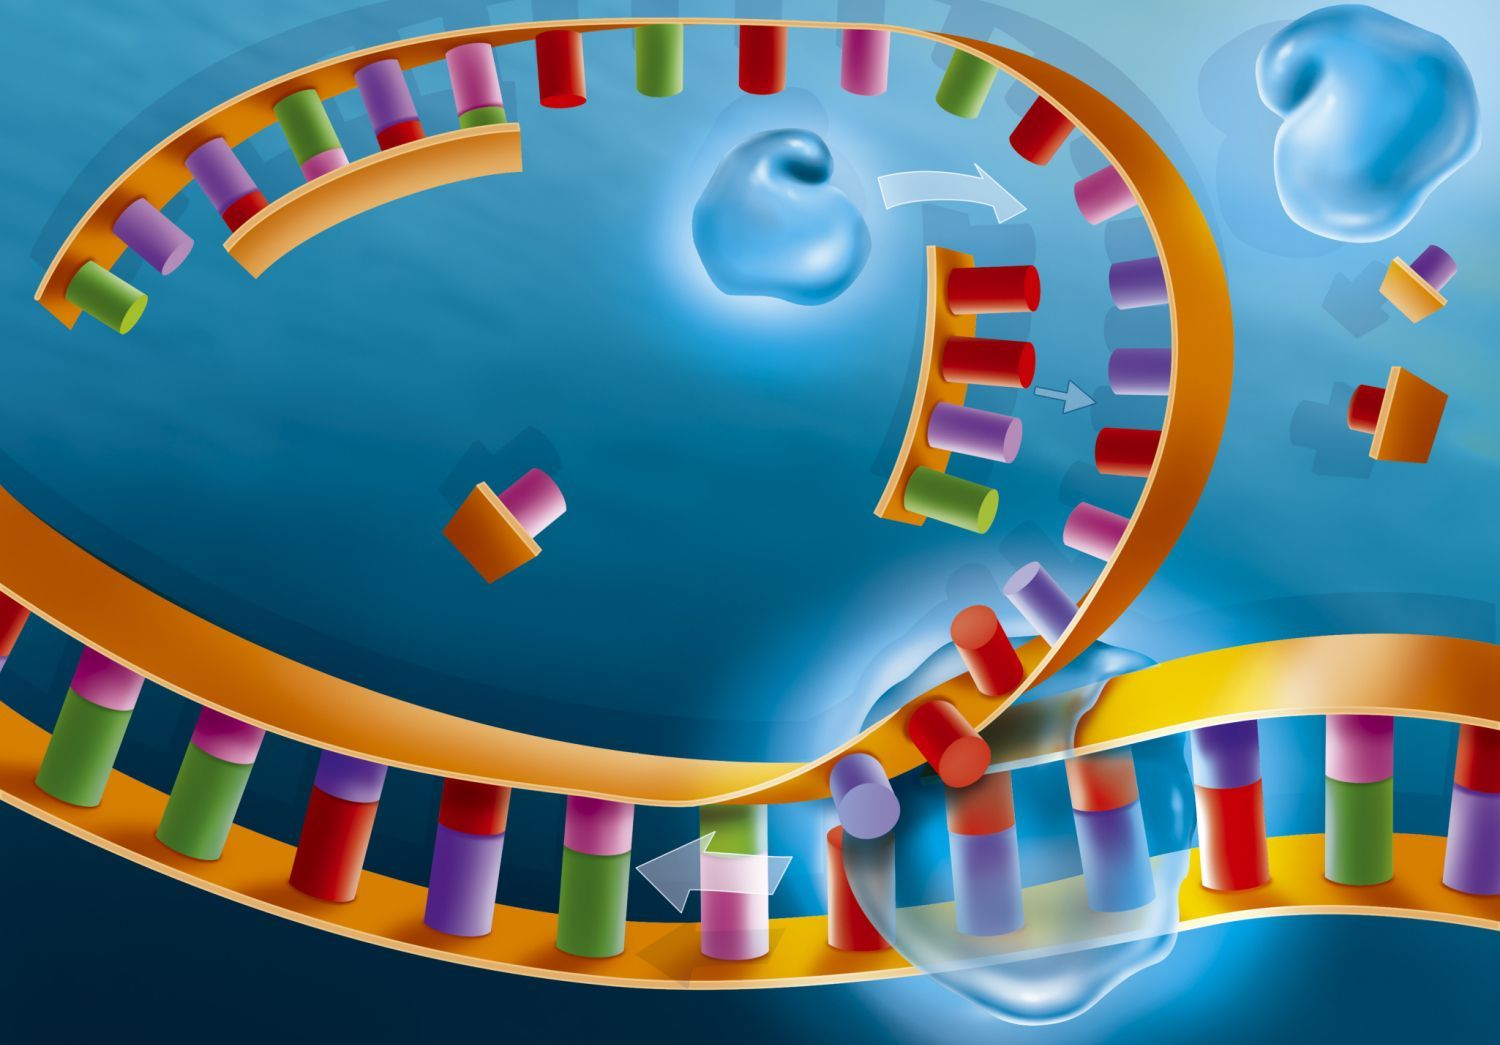 Steps of DNA Replication Dna replication, Dna, Dna facts